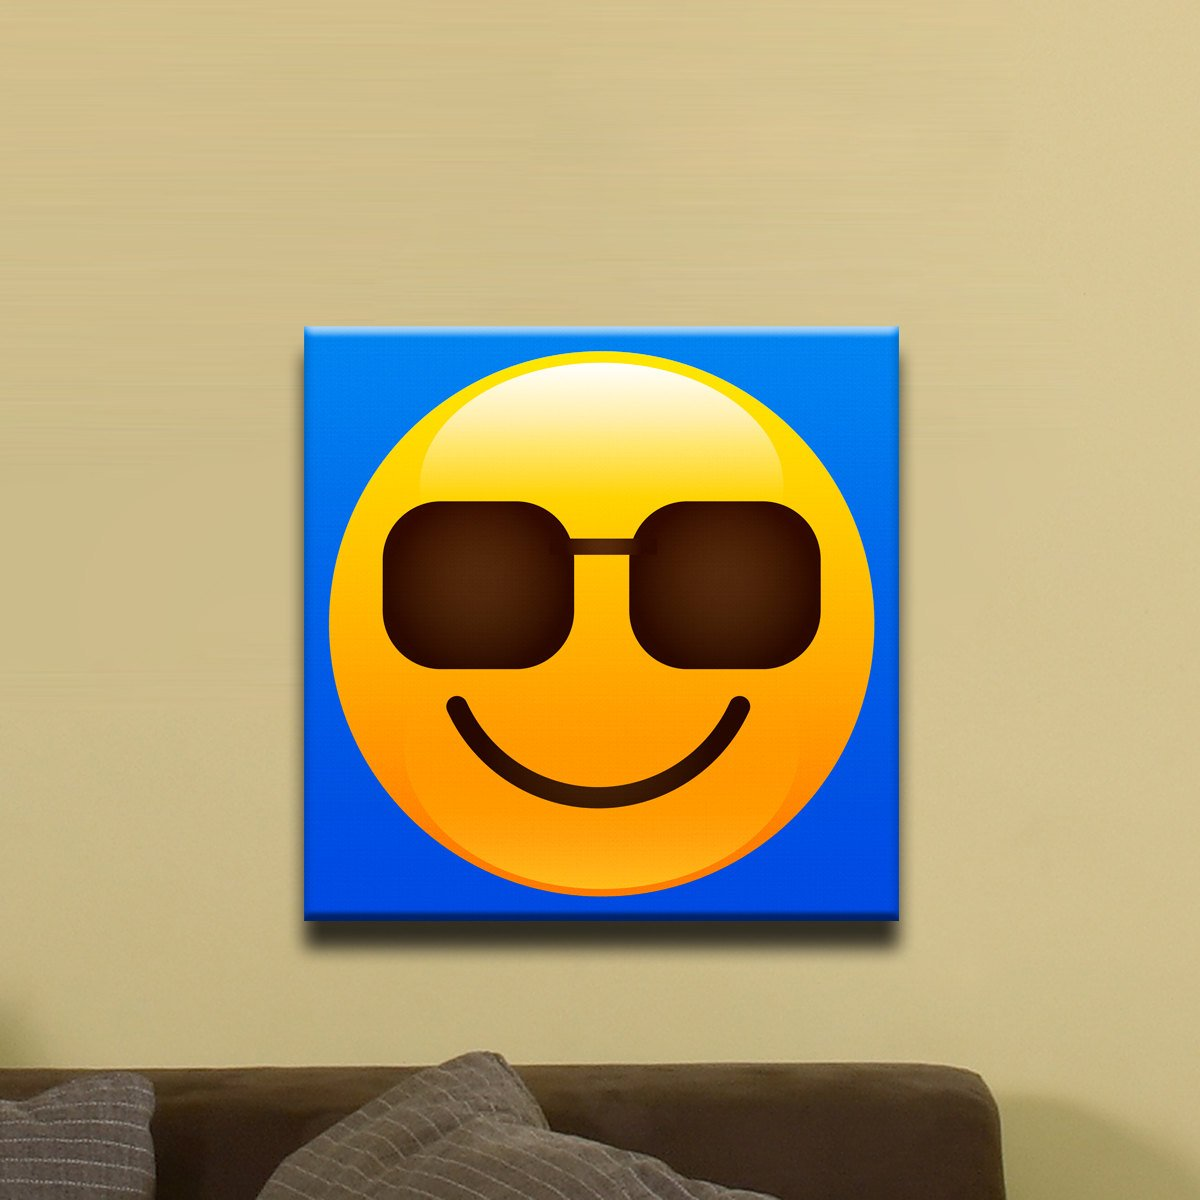 "Sunglasses, Smiley Face Shiny Emoji (12"" x 12"") - Canvas Wrap Print"